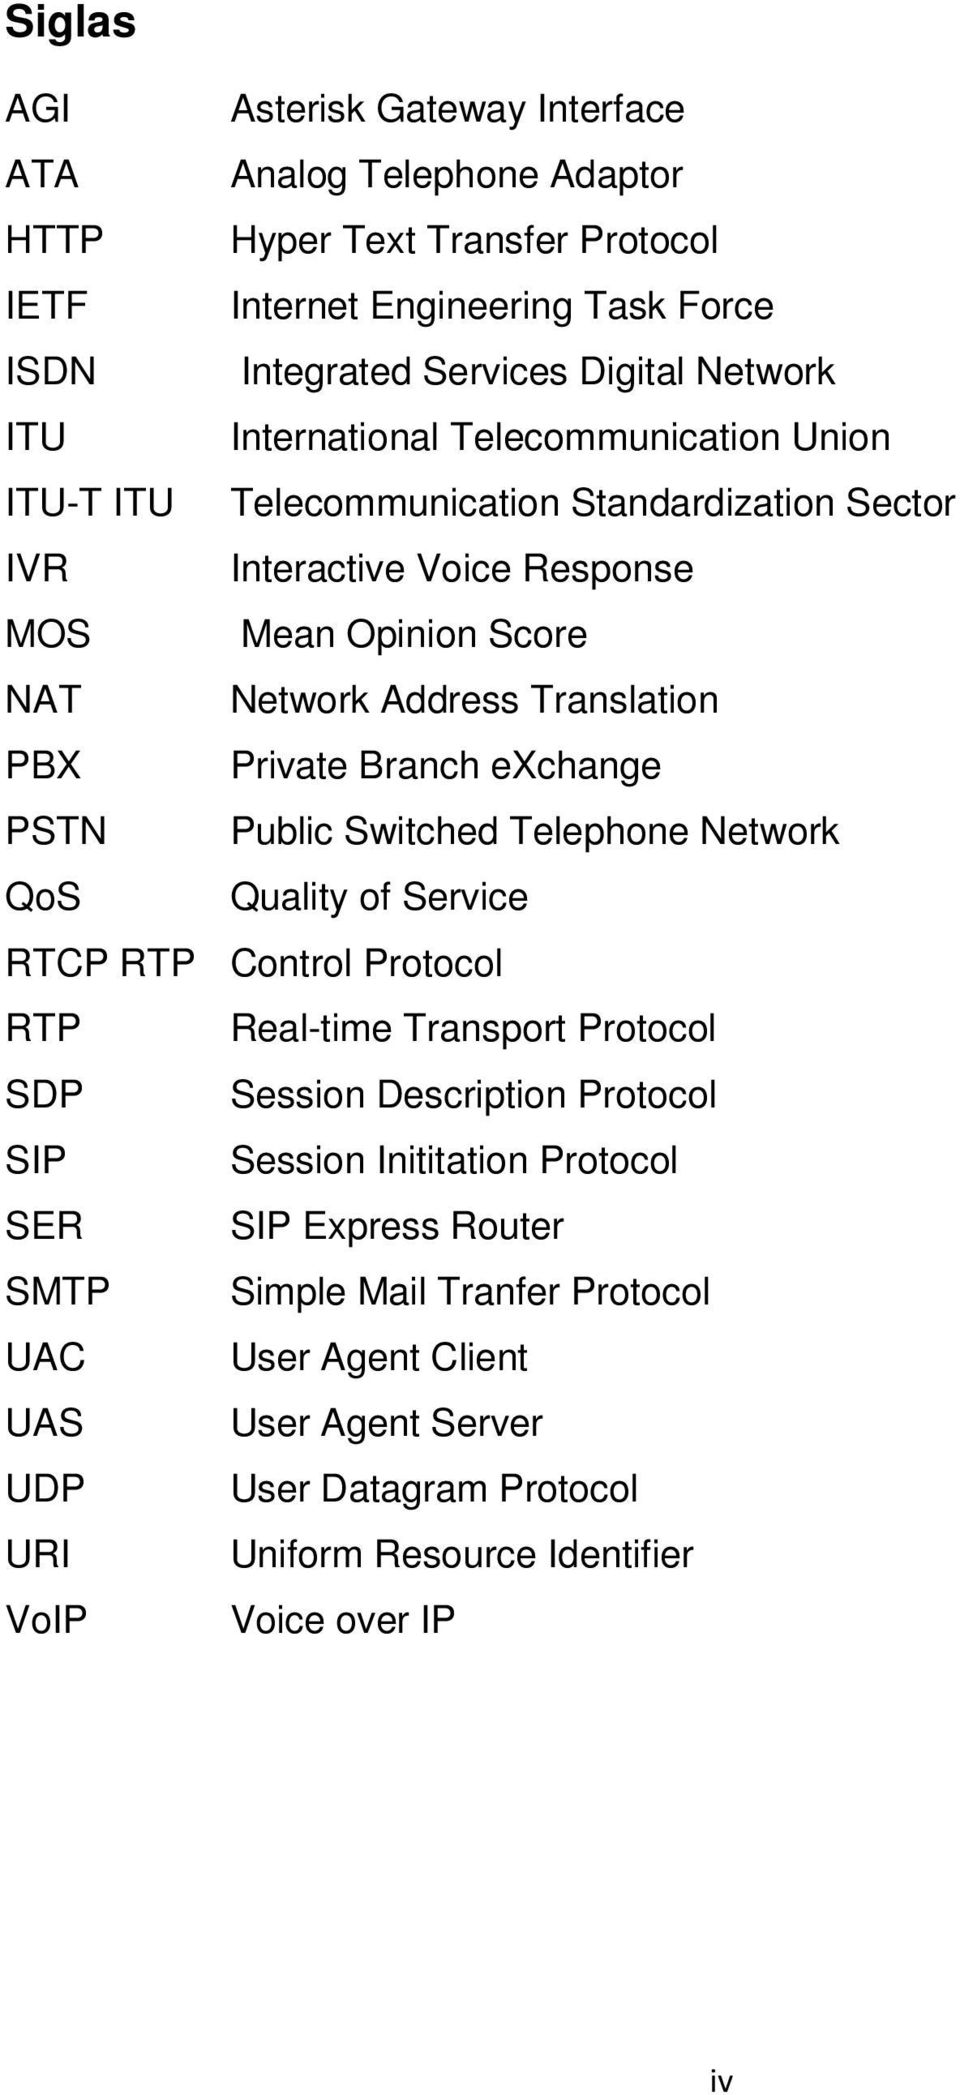 Branch exchange PSTN Public Switched Telephone Network QoS Quality of Service RTCP RTP Control Protocol RTP Real-time Transport Protocol SDP Session Description Protocol SIP Session